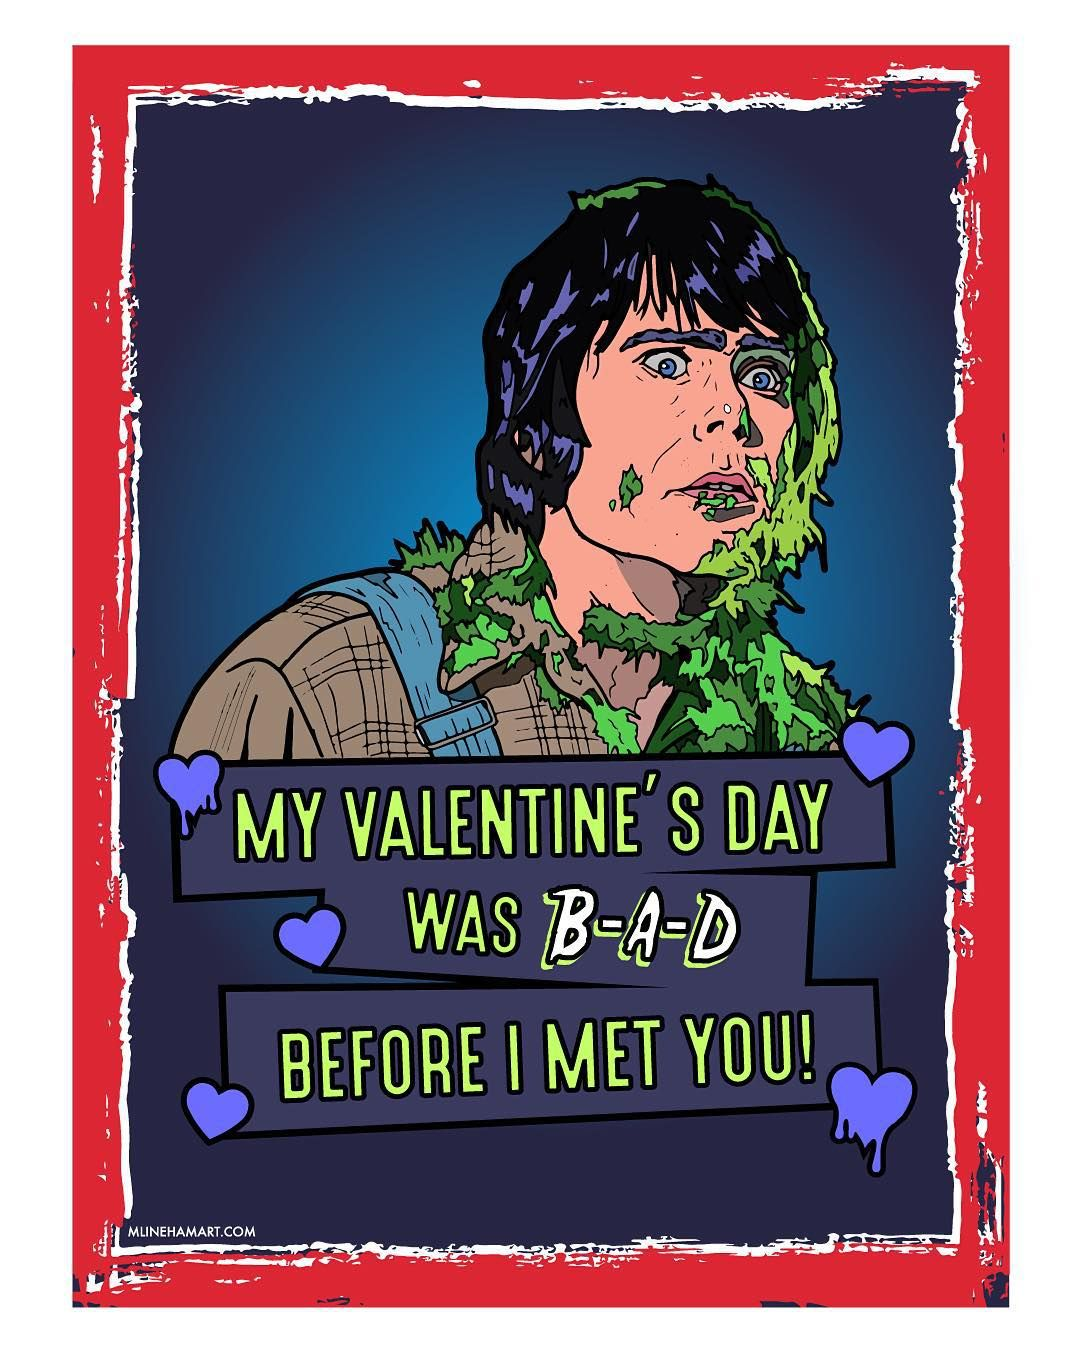 8 Horror Movie Themed Valentine S Day Cards For Your Sick Twisted Sweetie Nightmare On Film Street Horror Movie Quotes Michael Myers Michael Myers Halloween